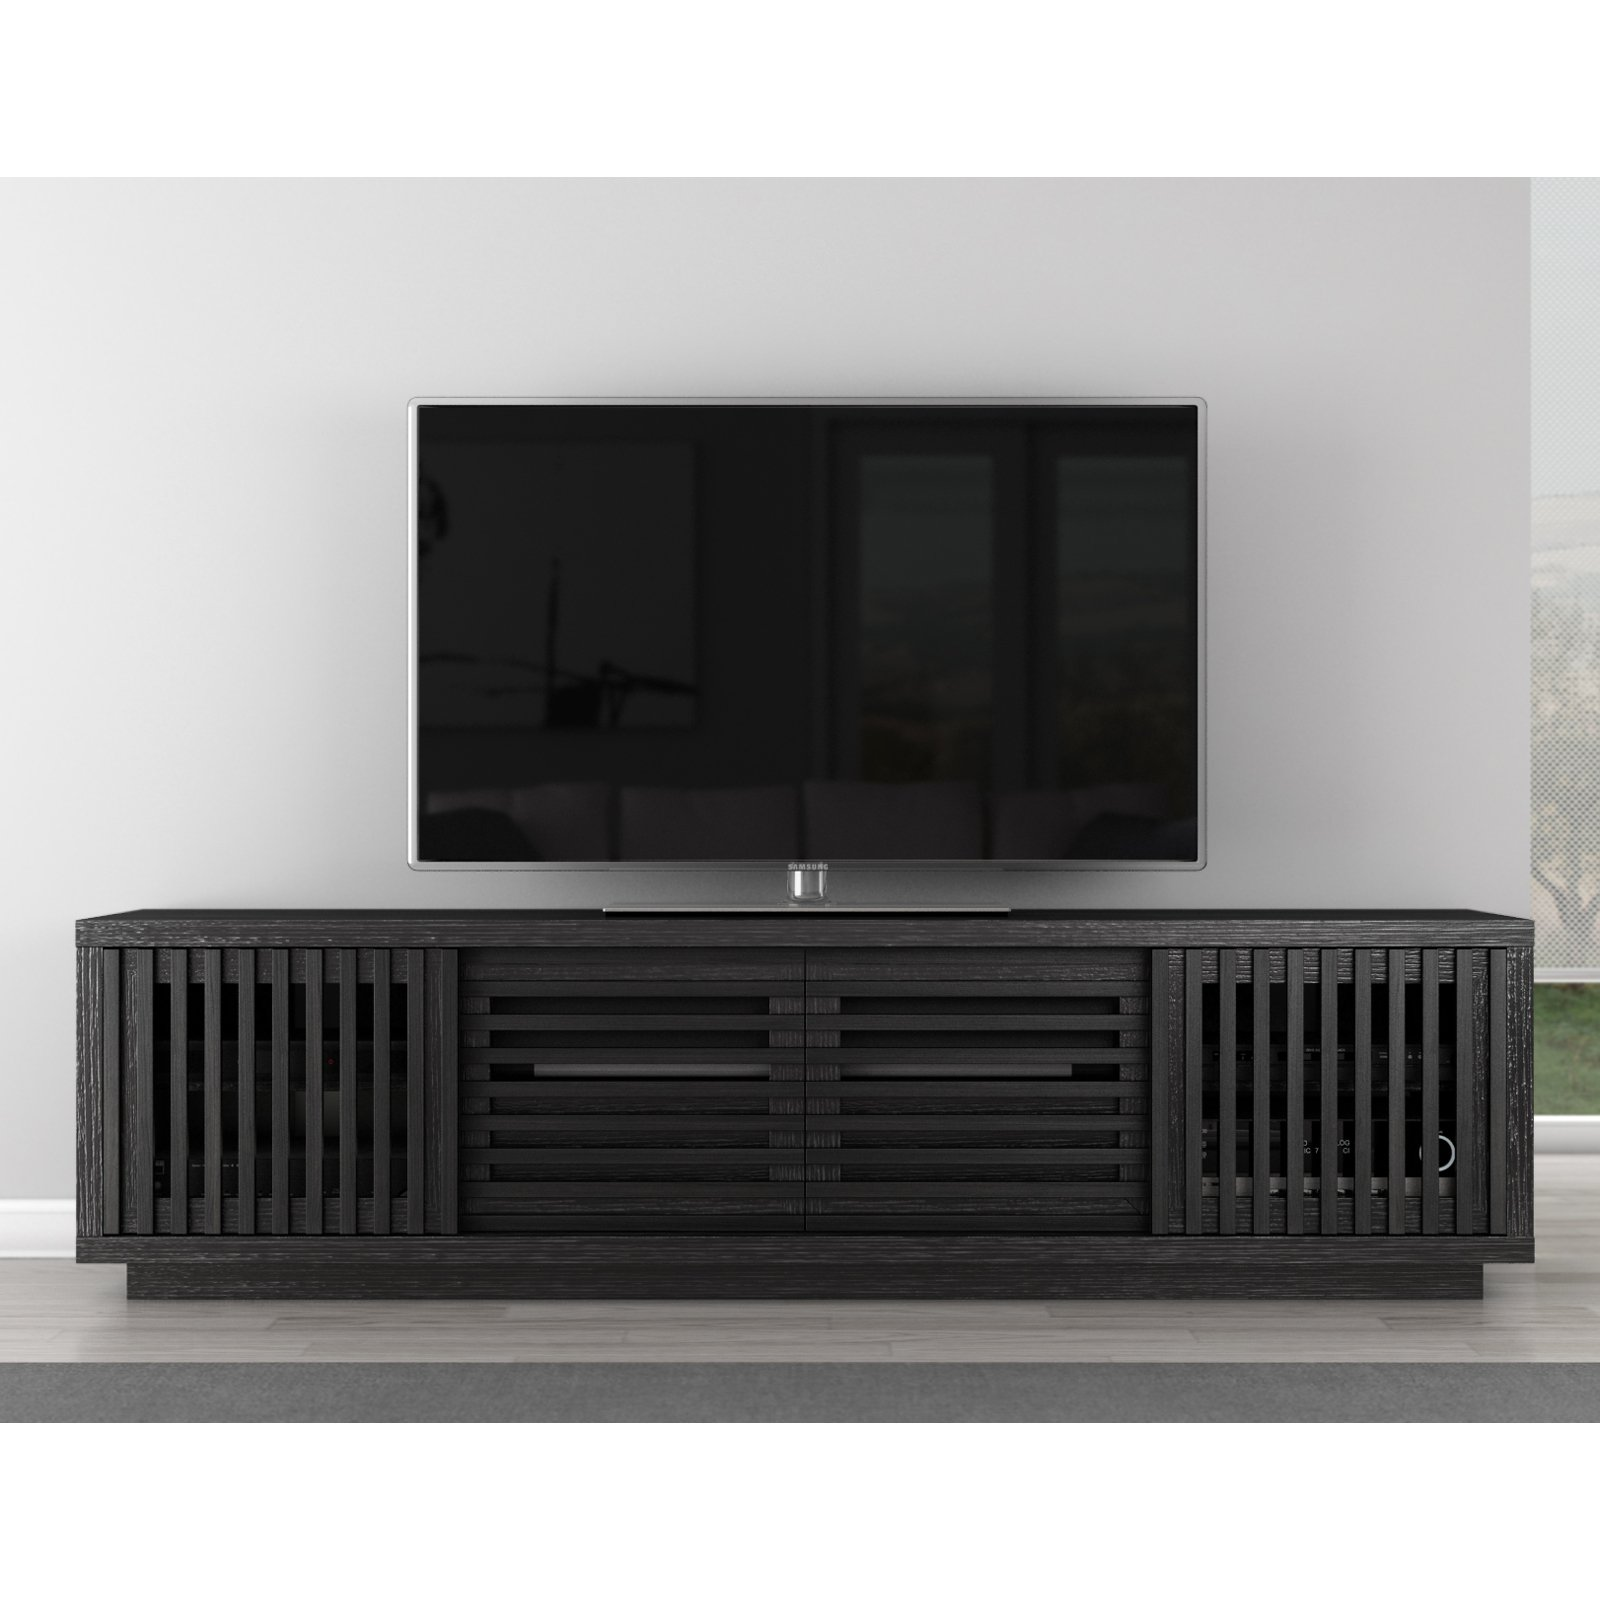 Furnitech Signature Home Collection 81.5 in. TV Stand - Ebony